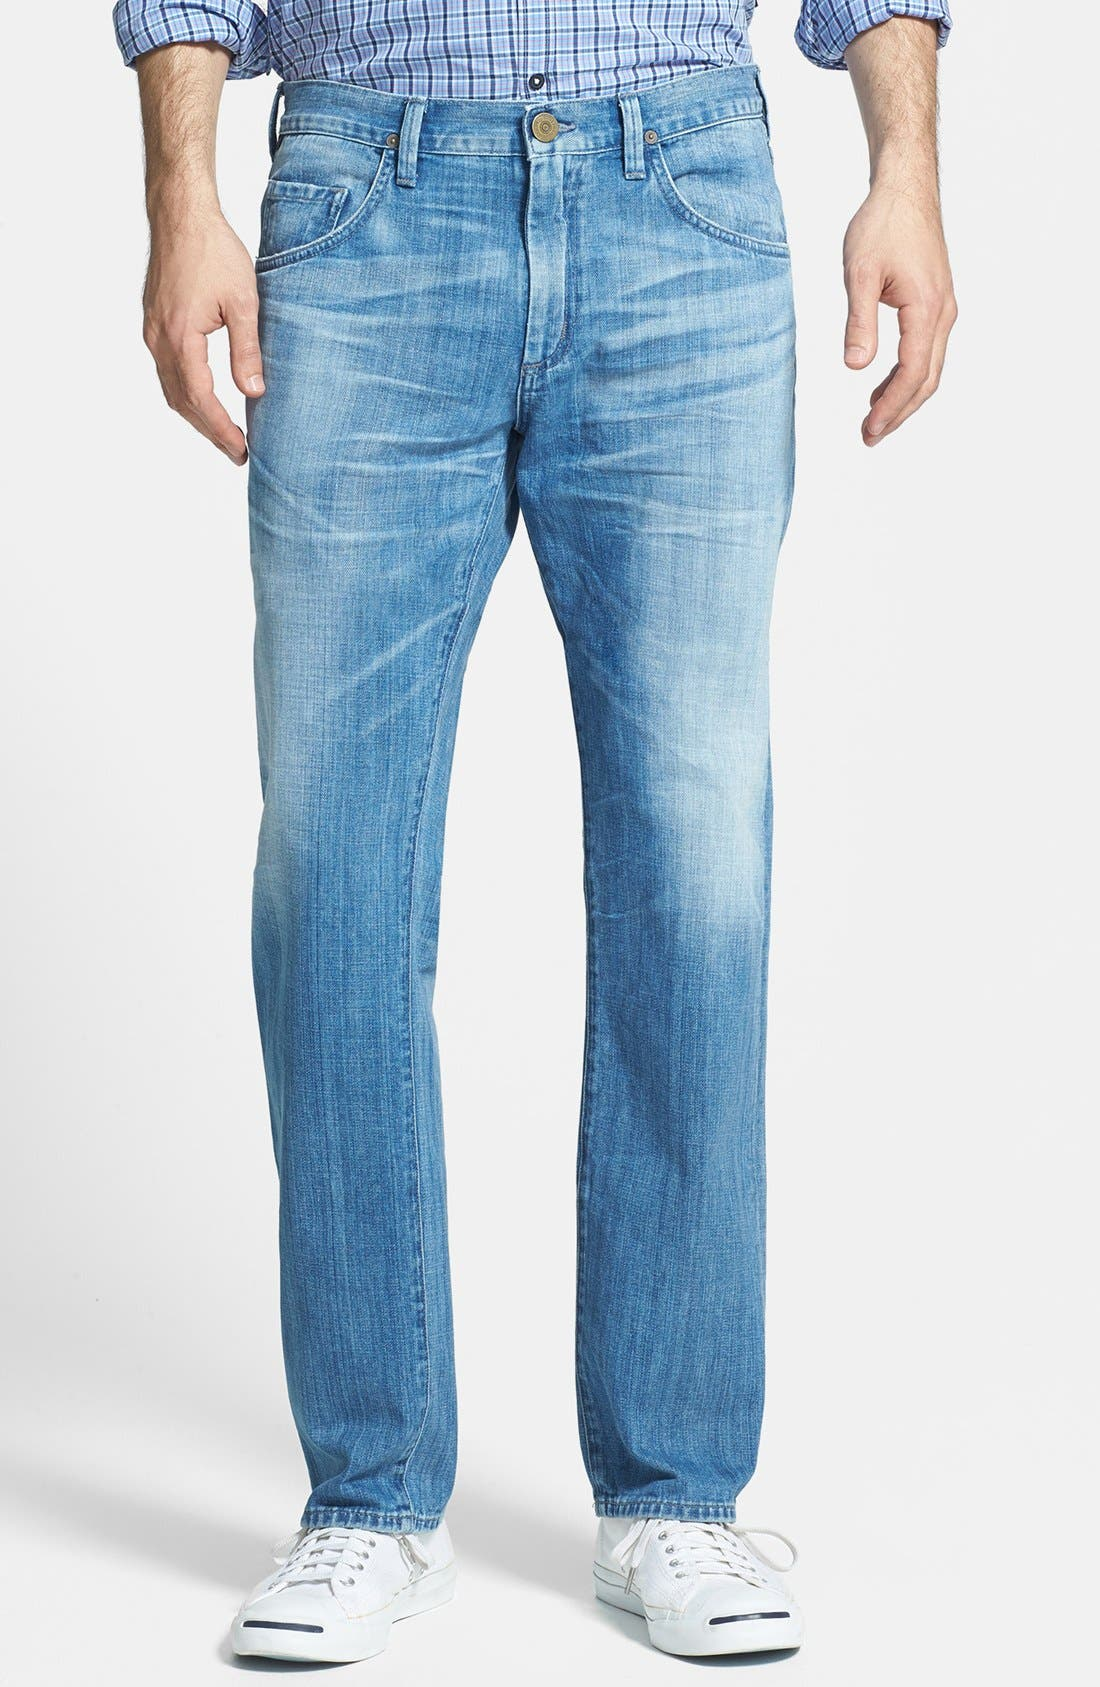 Alternate Image 1 Selected - Citizens of Humanity 'Perfect' Relaxed Leg Jeans (Jordan)